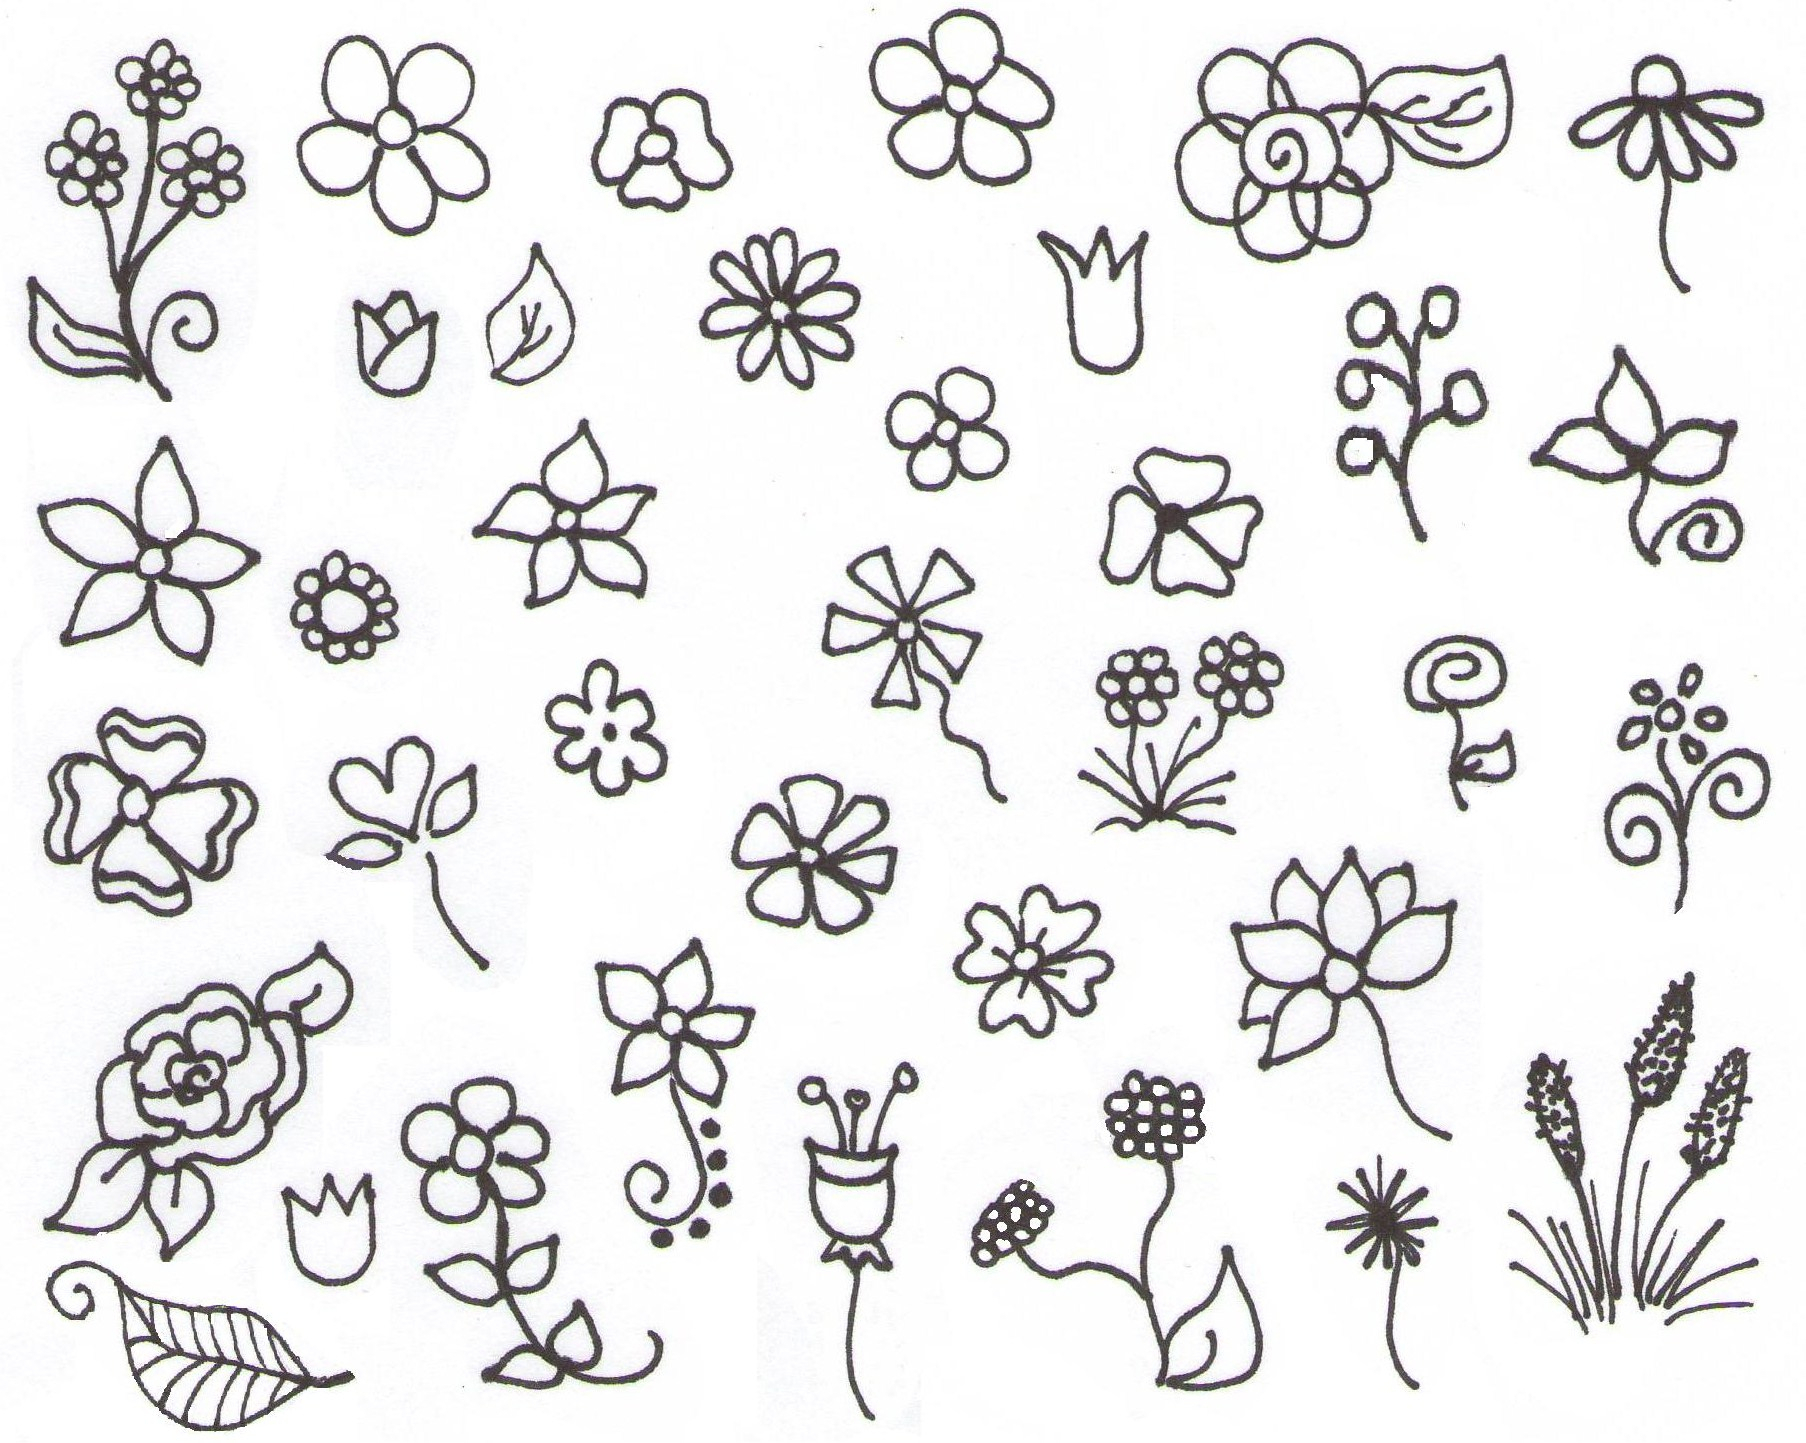 1806x1443 Drawing Simple Flower Image Scrapbooking Flower Templates Variety